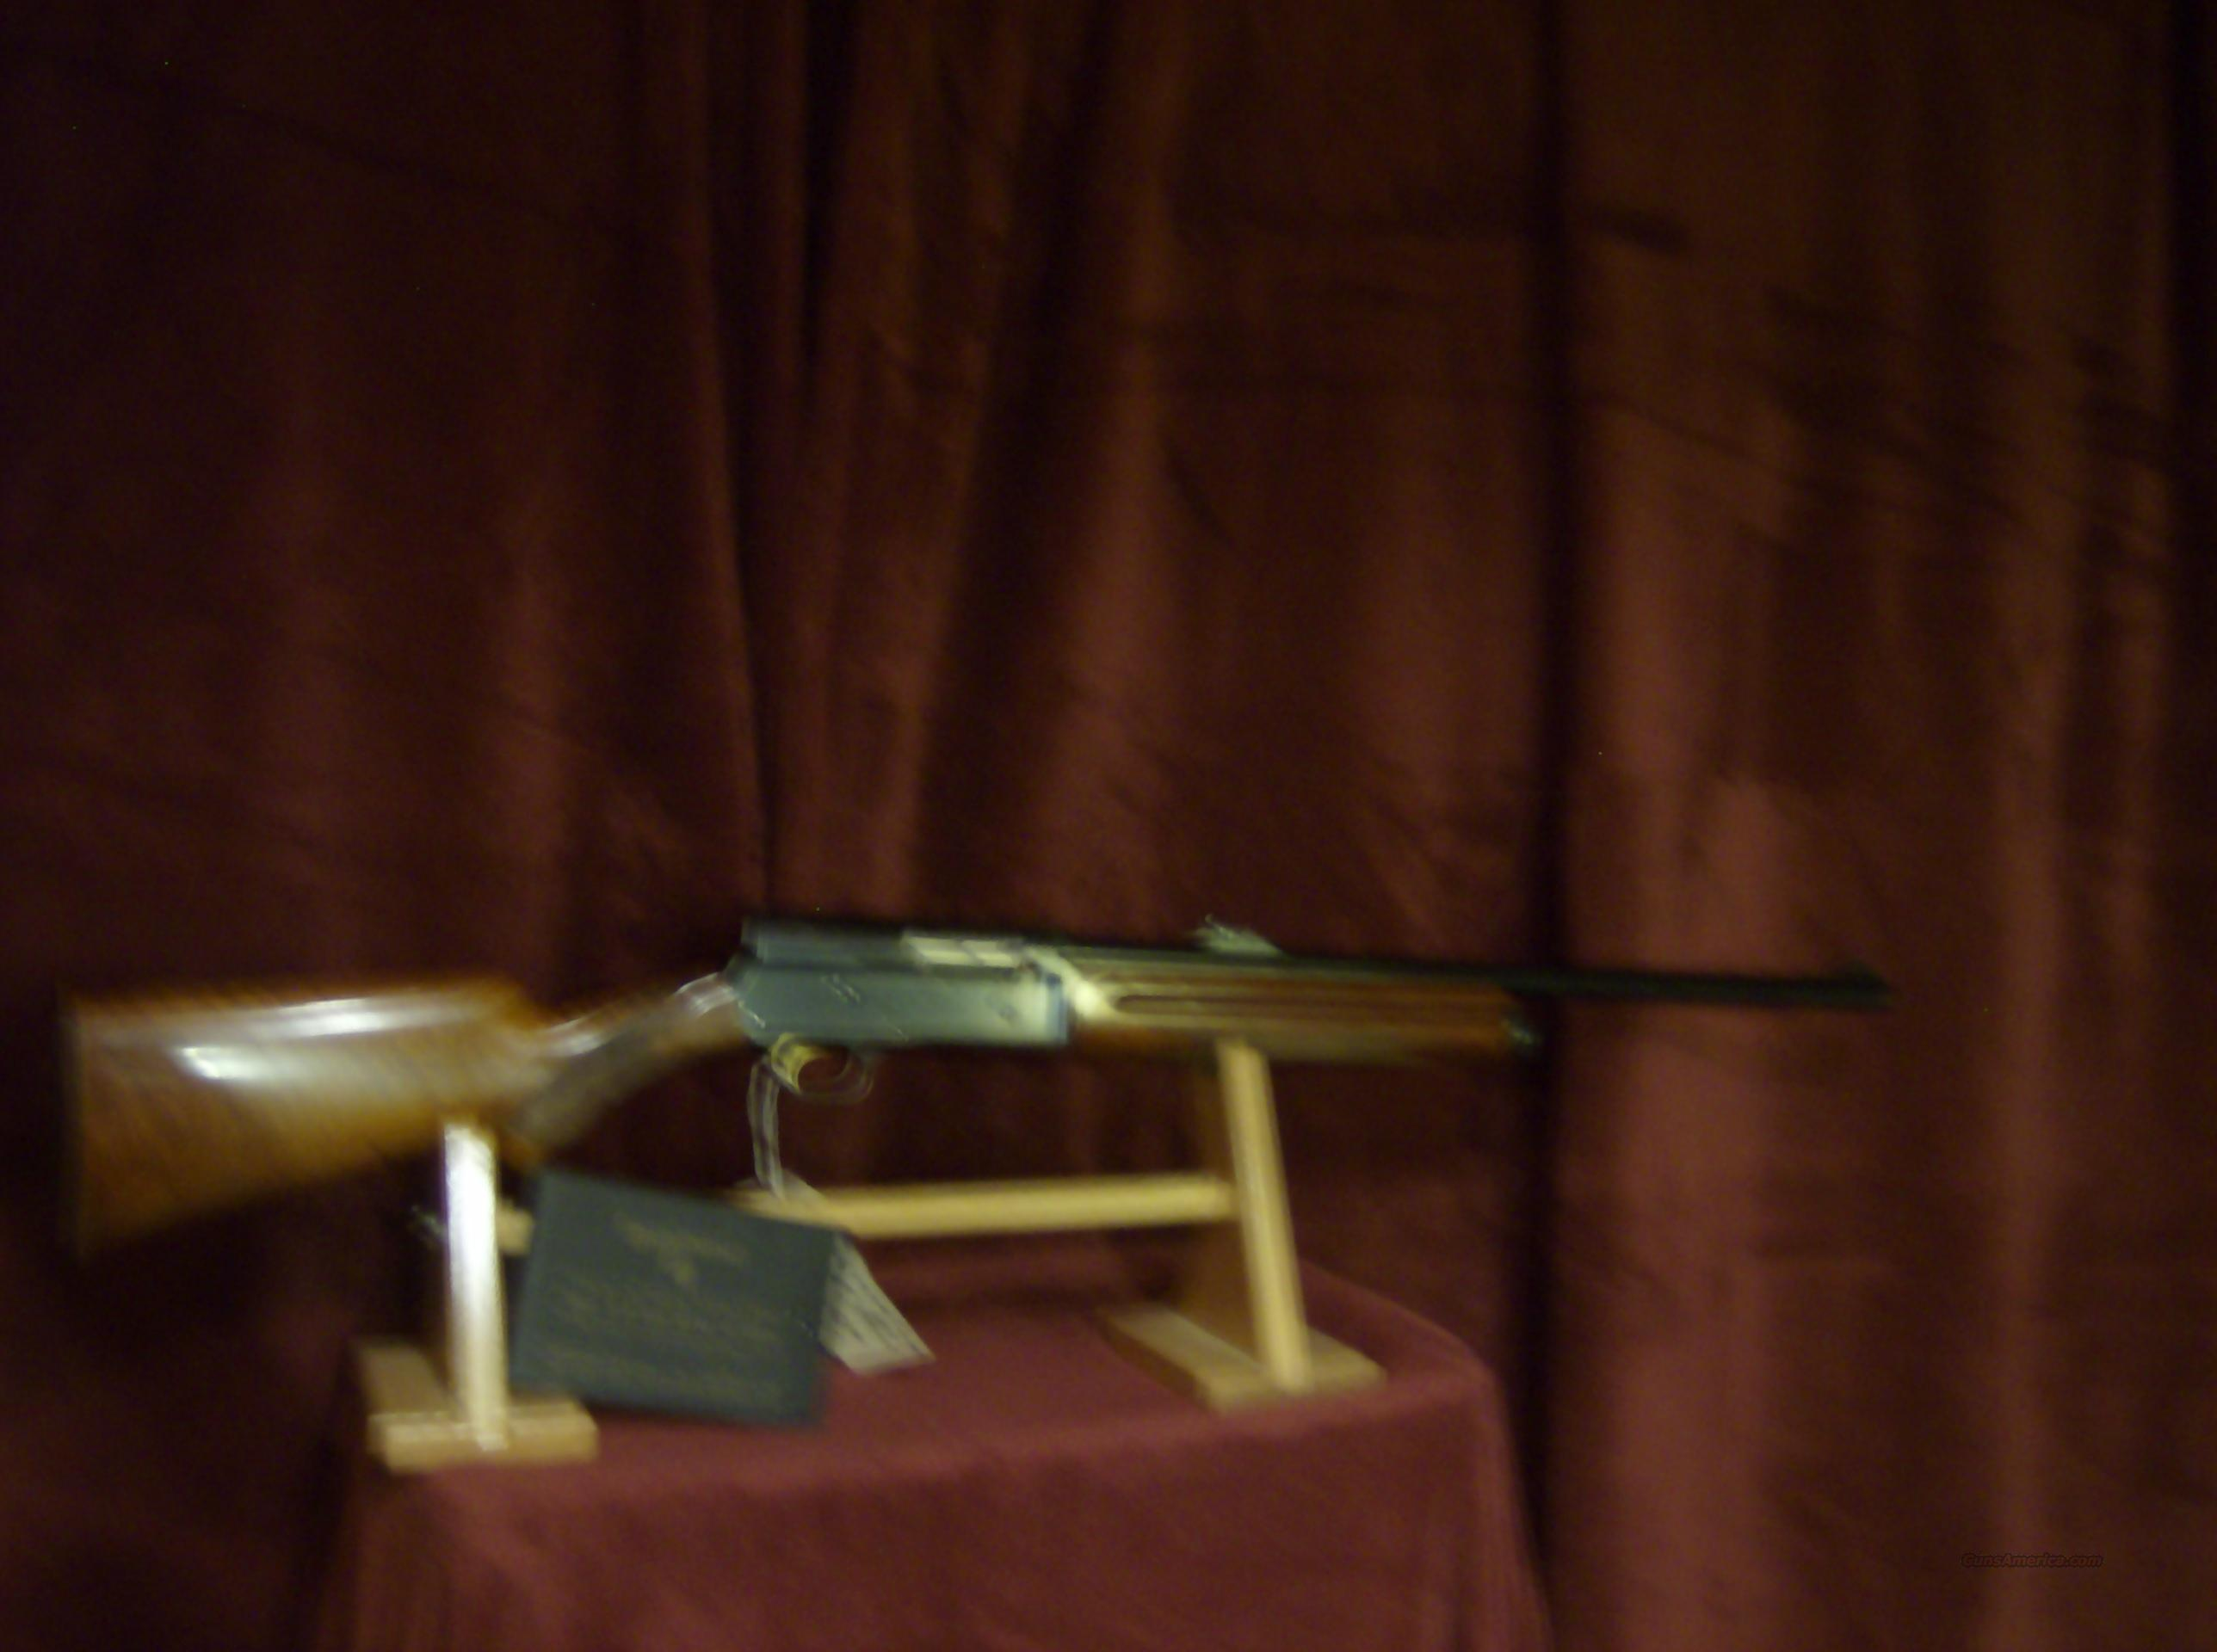 BROWNING A5 LIGHT 12 12GA BELGIUM W/HANG TAG  Guns > Shotguns > Browning Shotguns > Autoloaders > Hunting